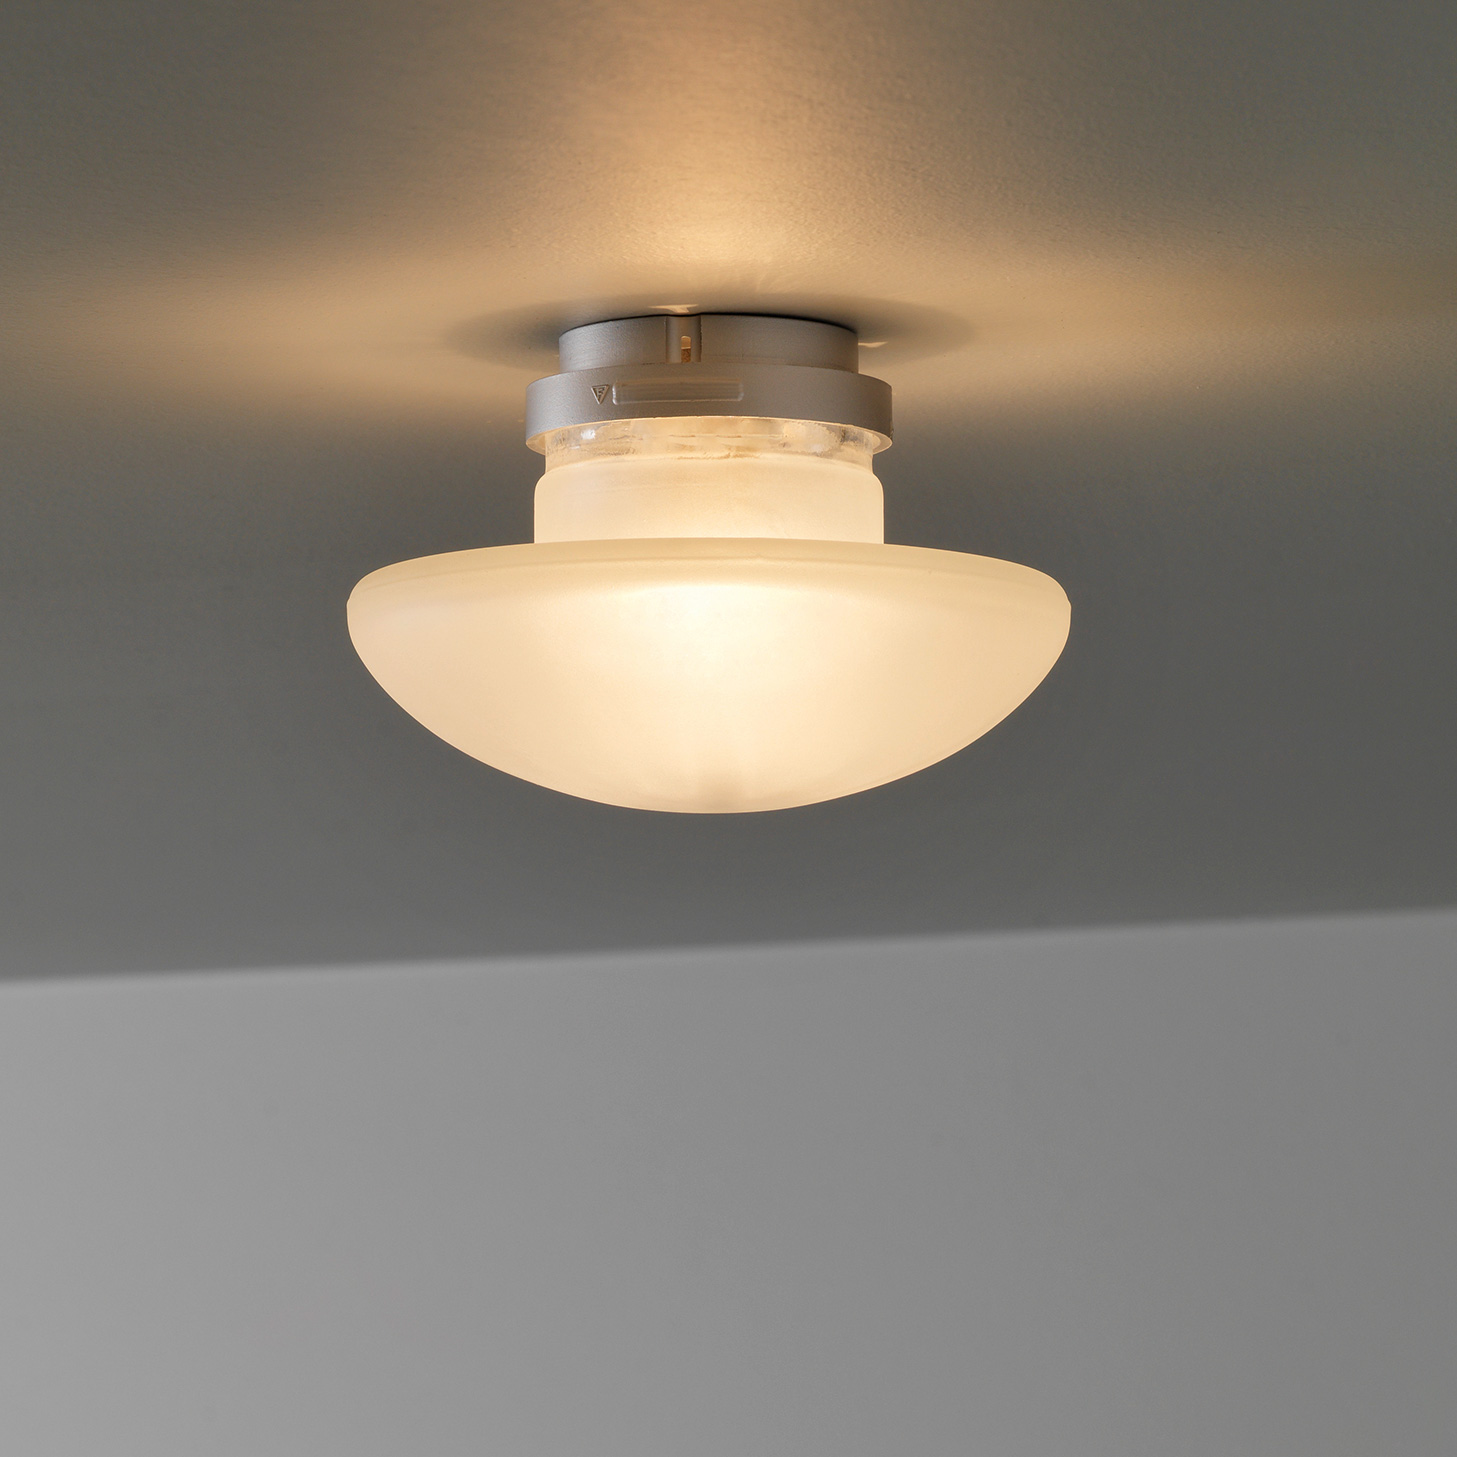 & Sillaba Low Voltage Ceiling or Wall Light by Fontana Arte | UL2775/2G